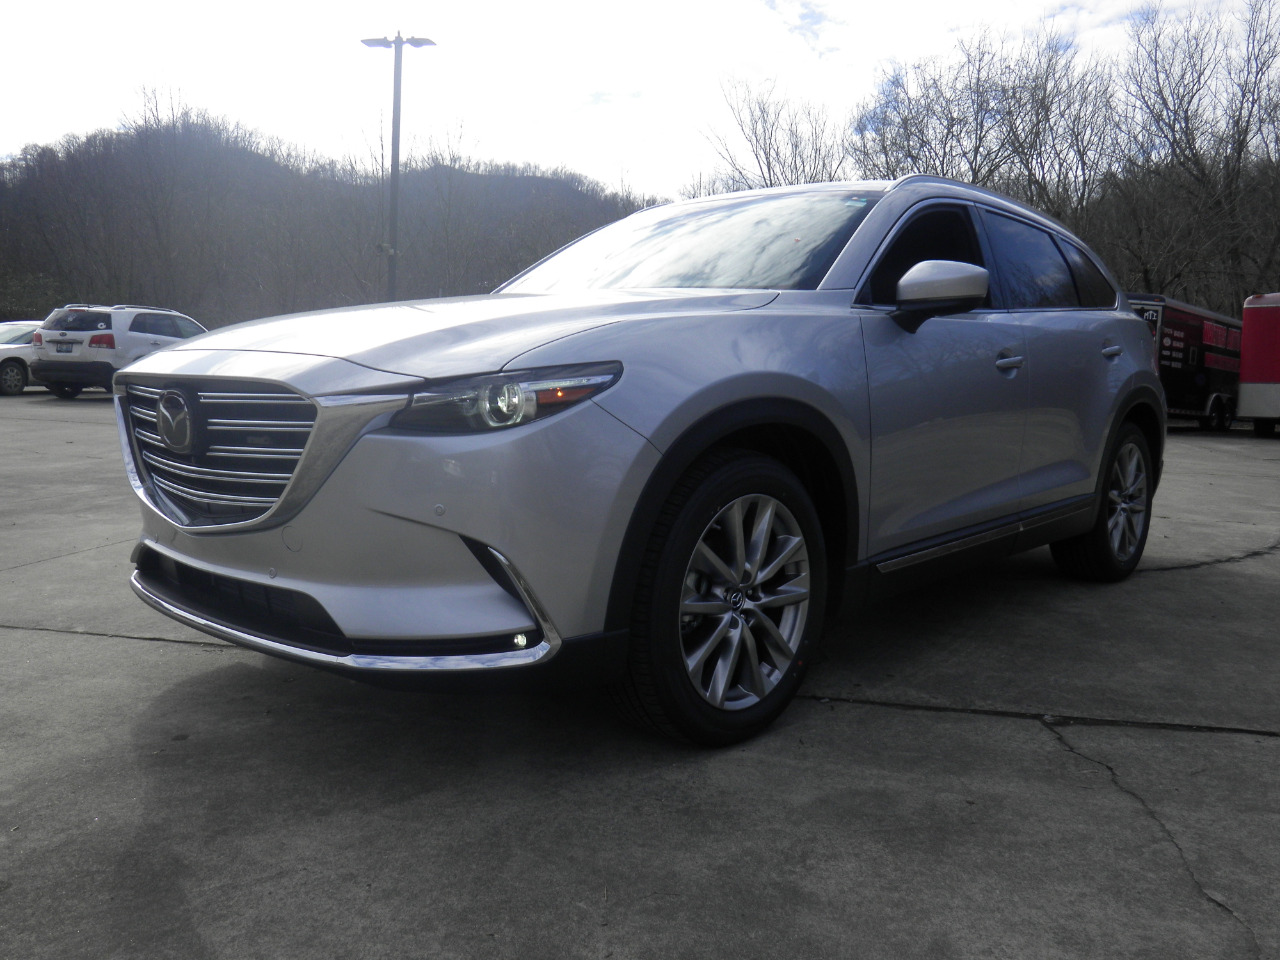 2019 Mazda CX-9 Grand Touring AWD